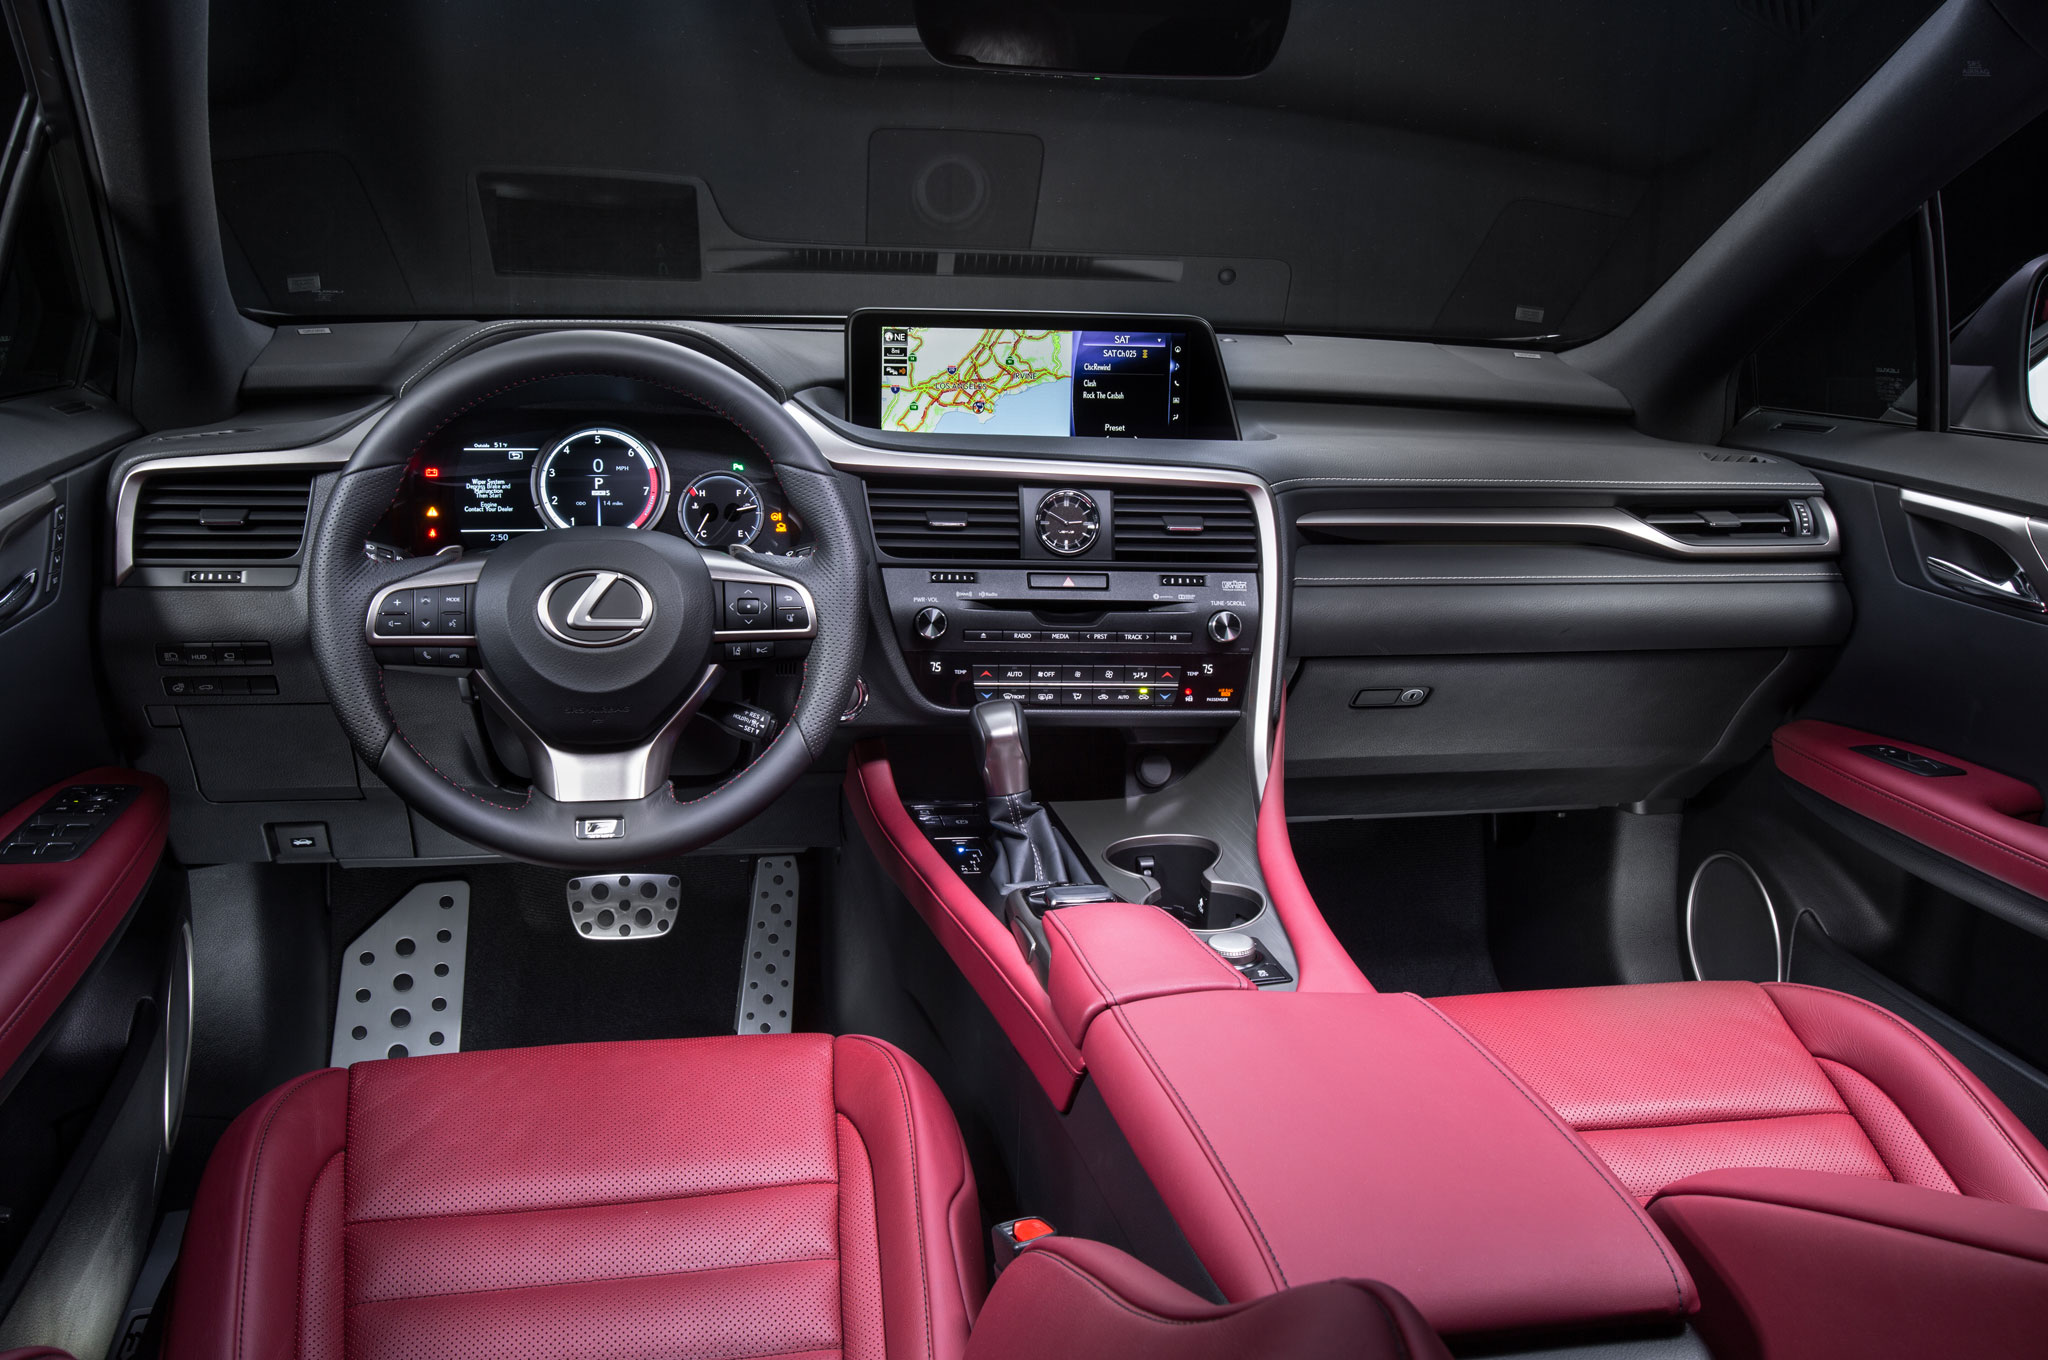 Though the RX has a slightly larger footprint than before, most interior dimensions don't change much. It's still a nice size inside, with a good amount of ...